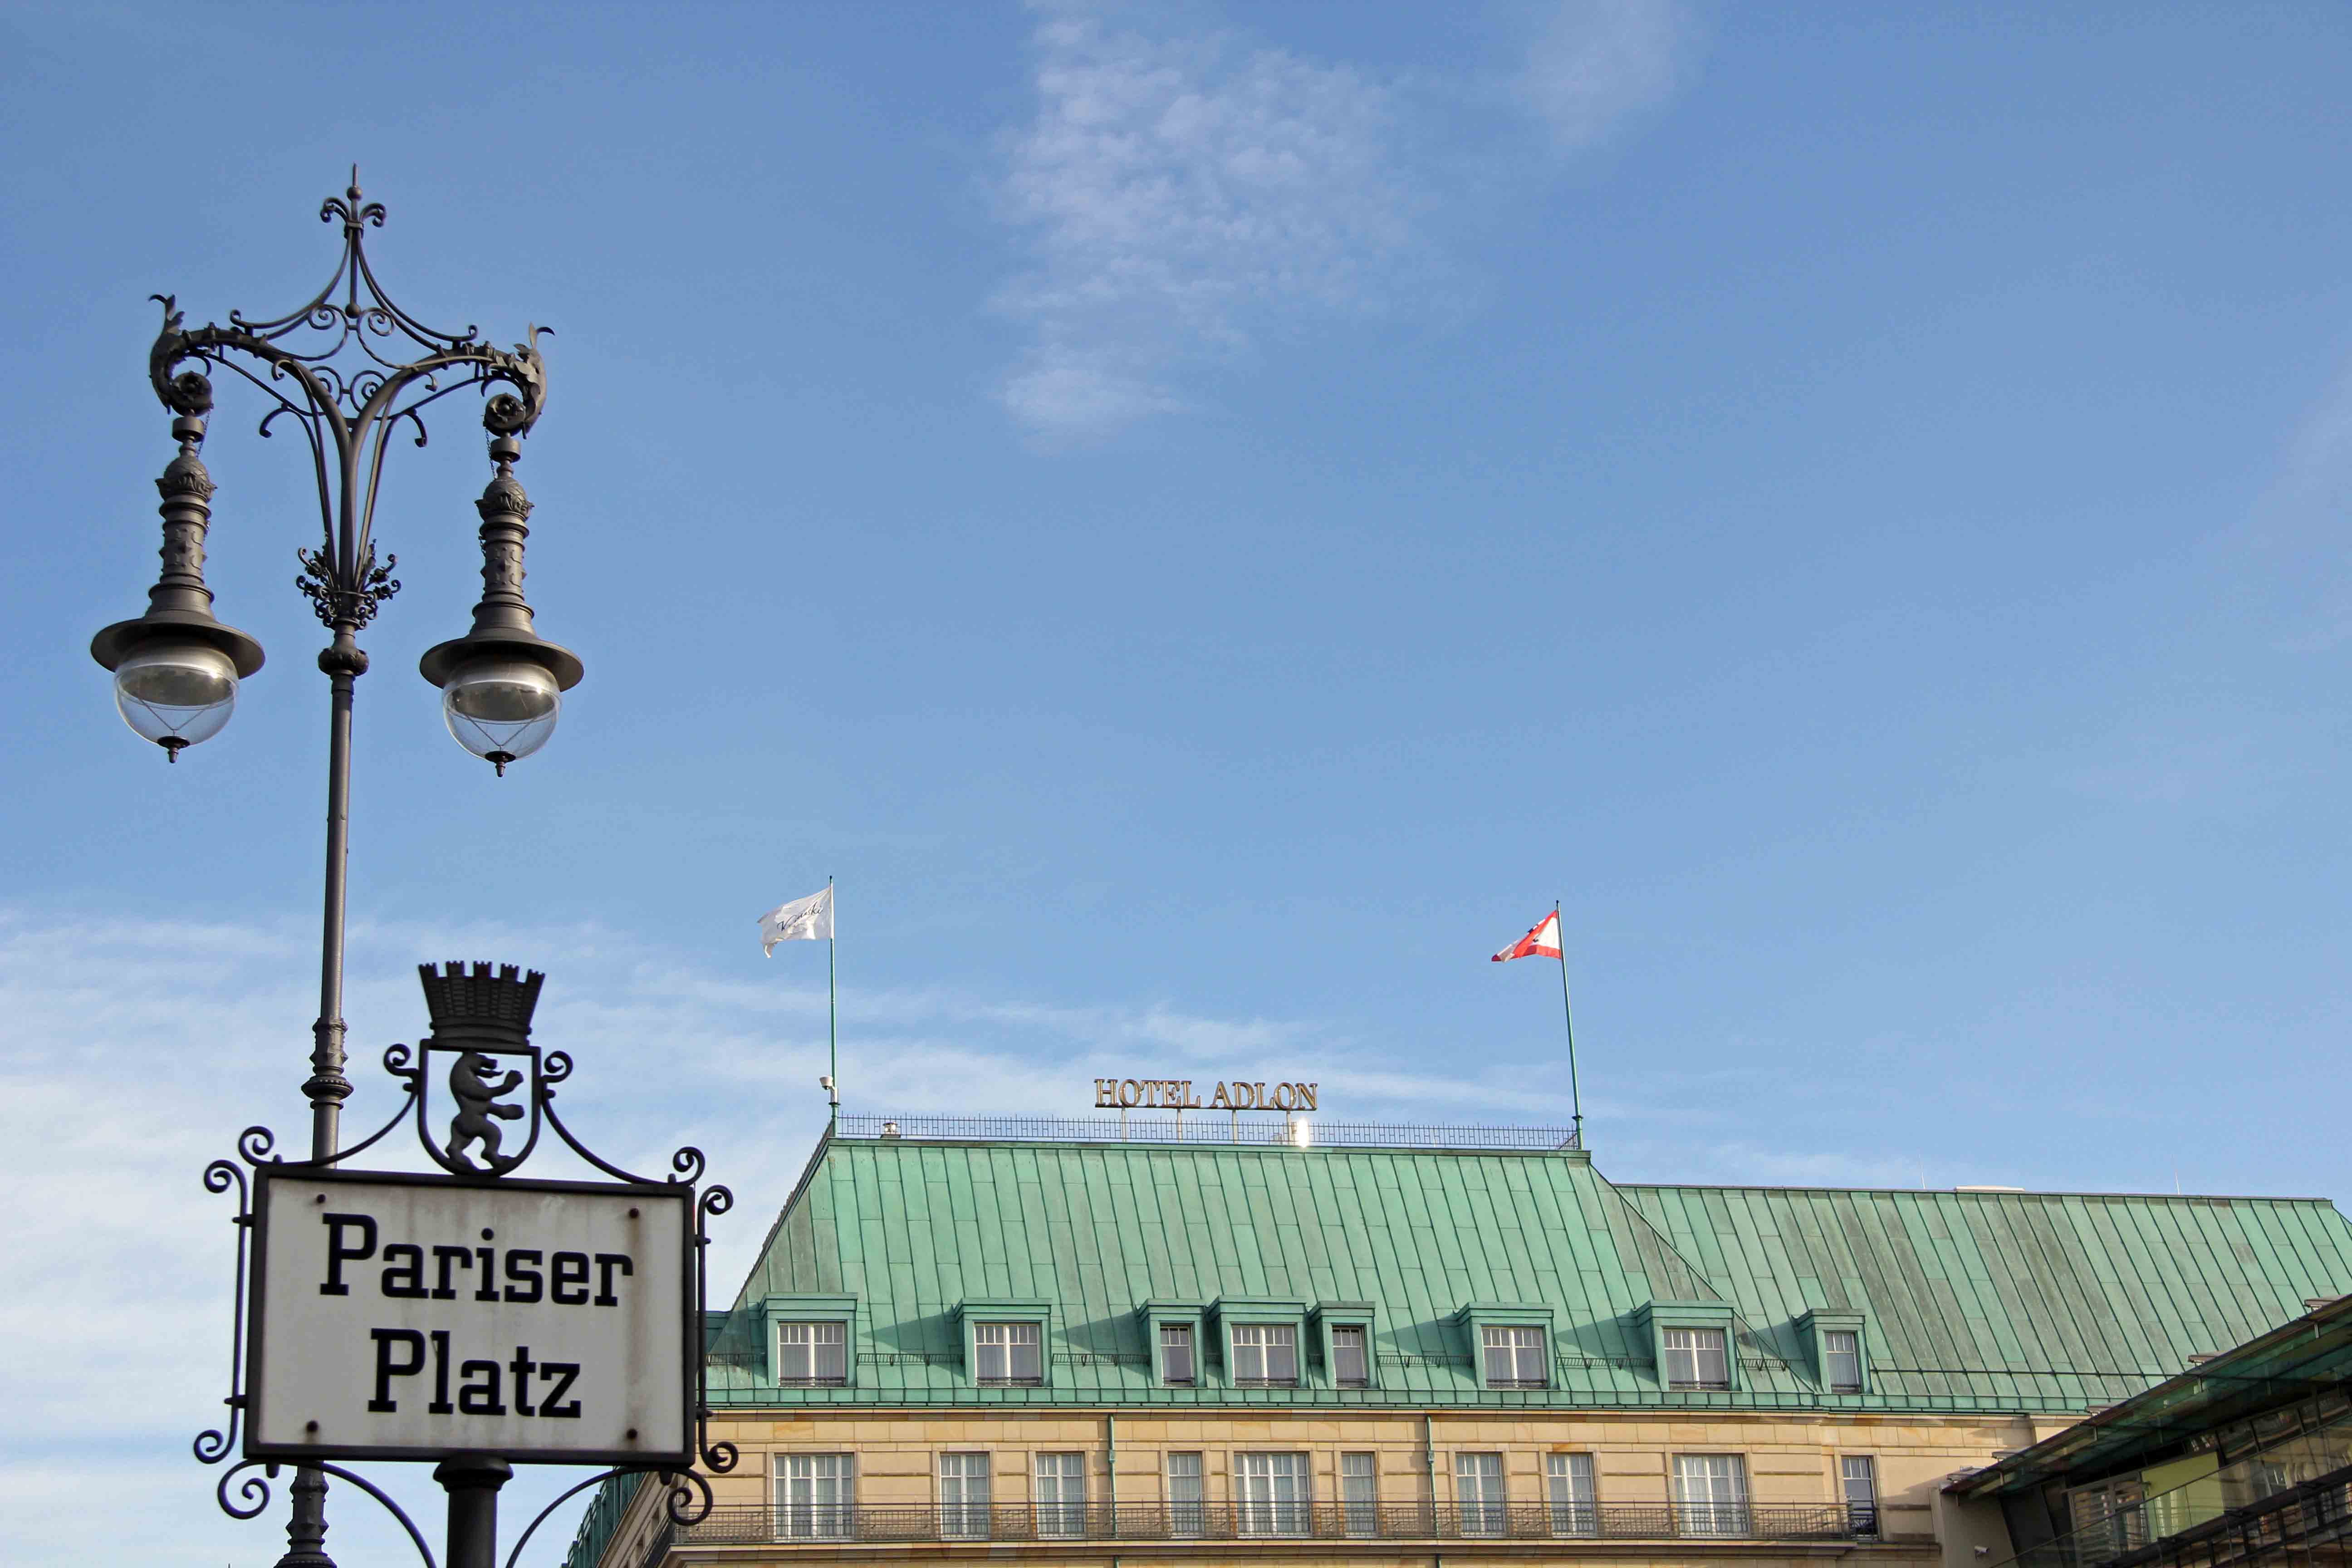 Hotel Adlon, lamp and sign on Pariser Platz, Berlin